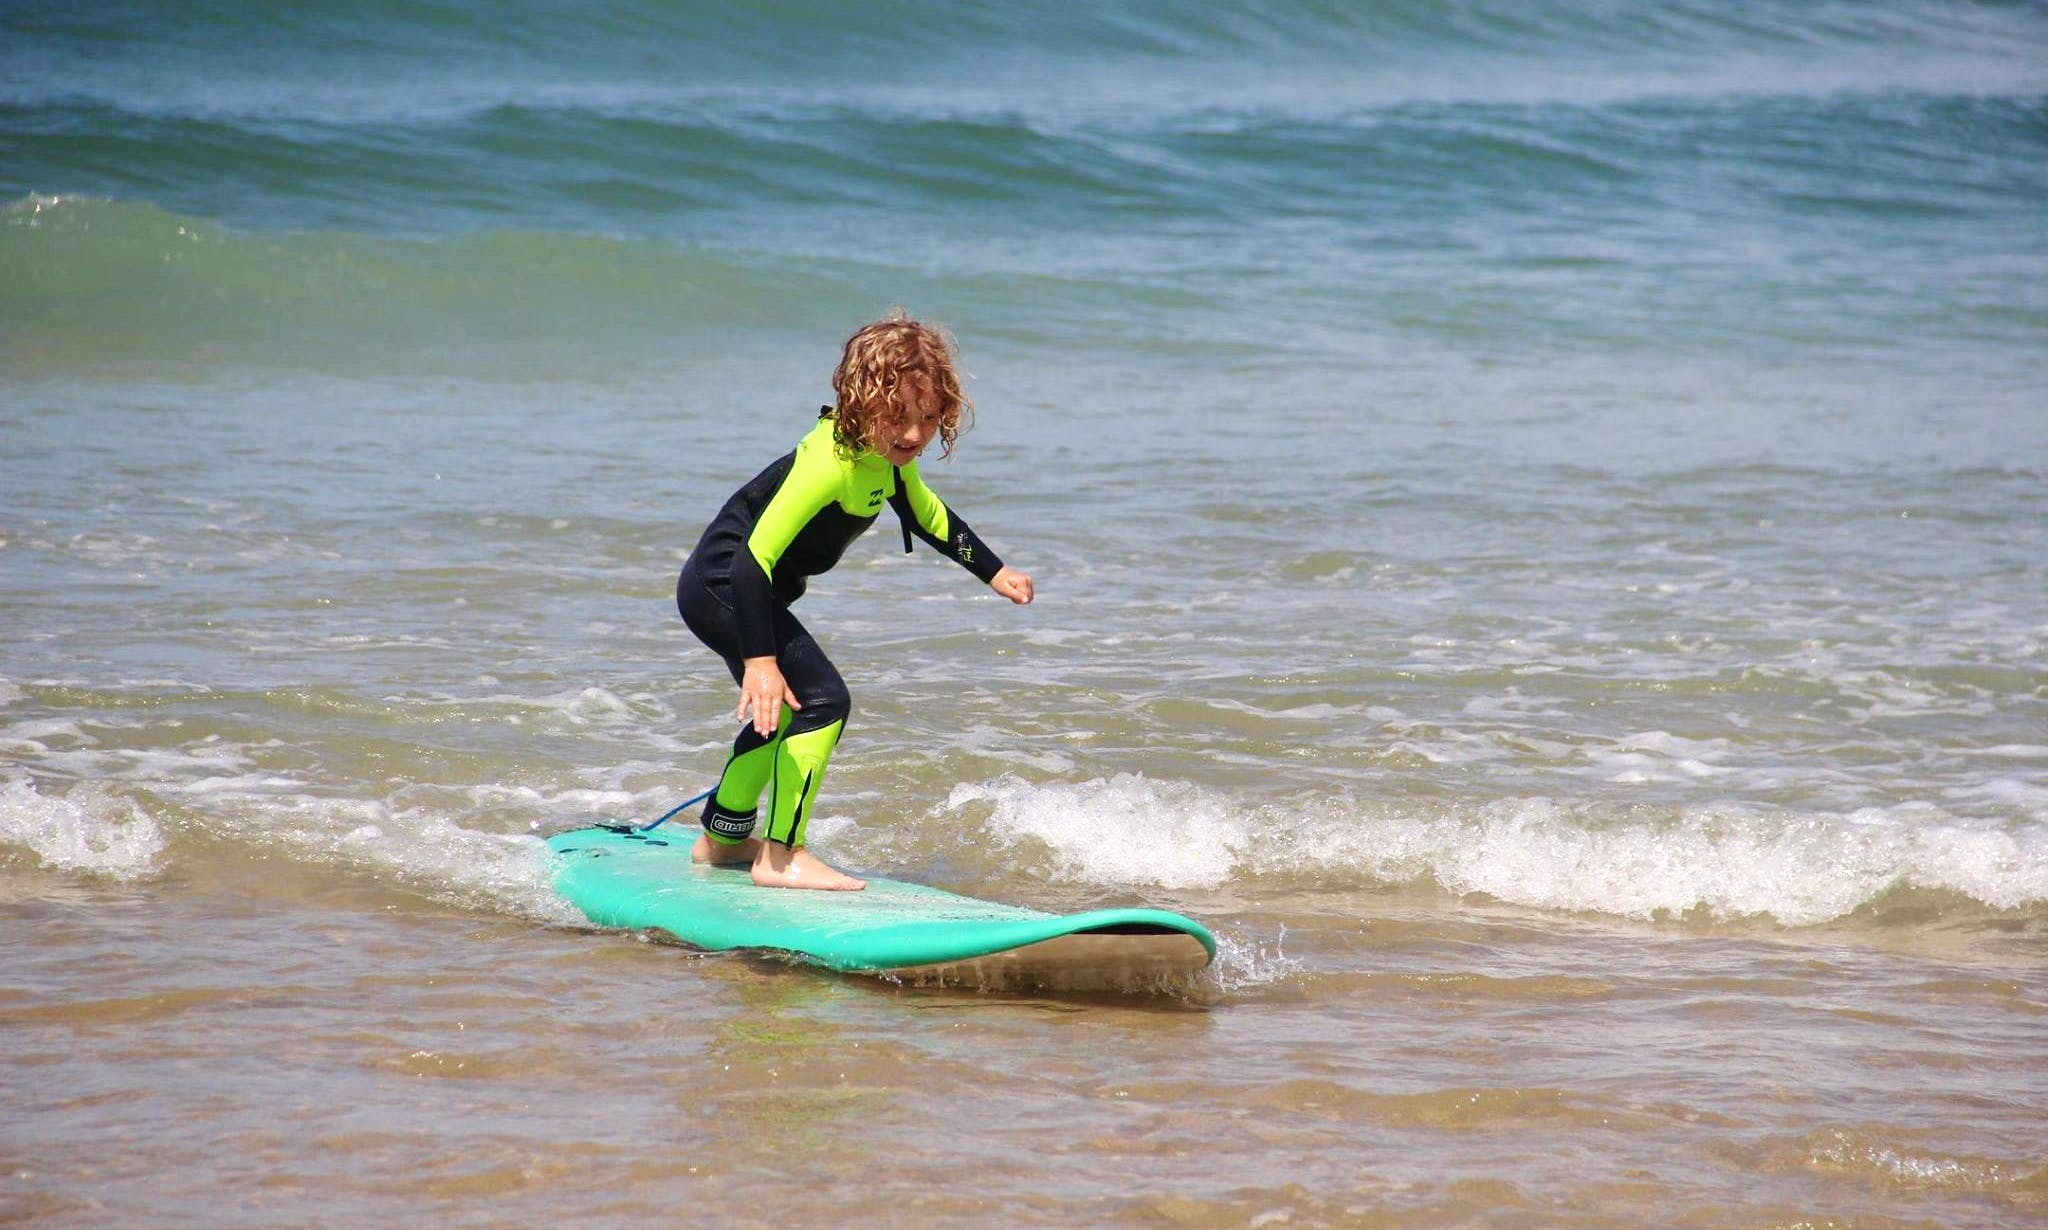 Enjoy Surf Lessons in Espinho, Portugal